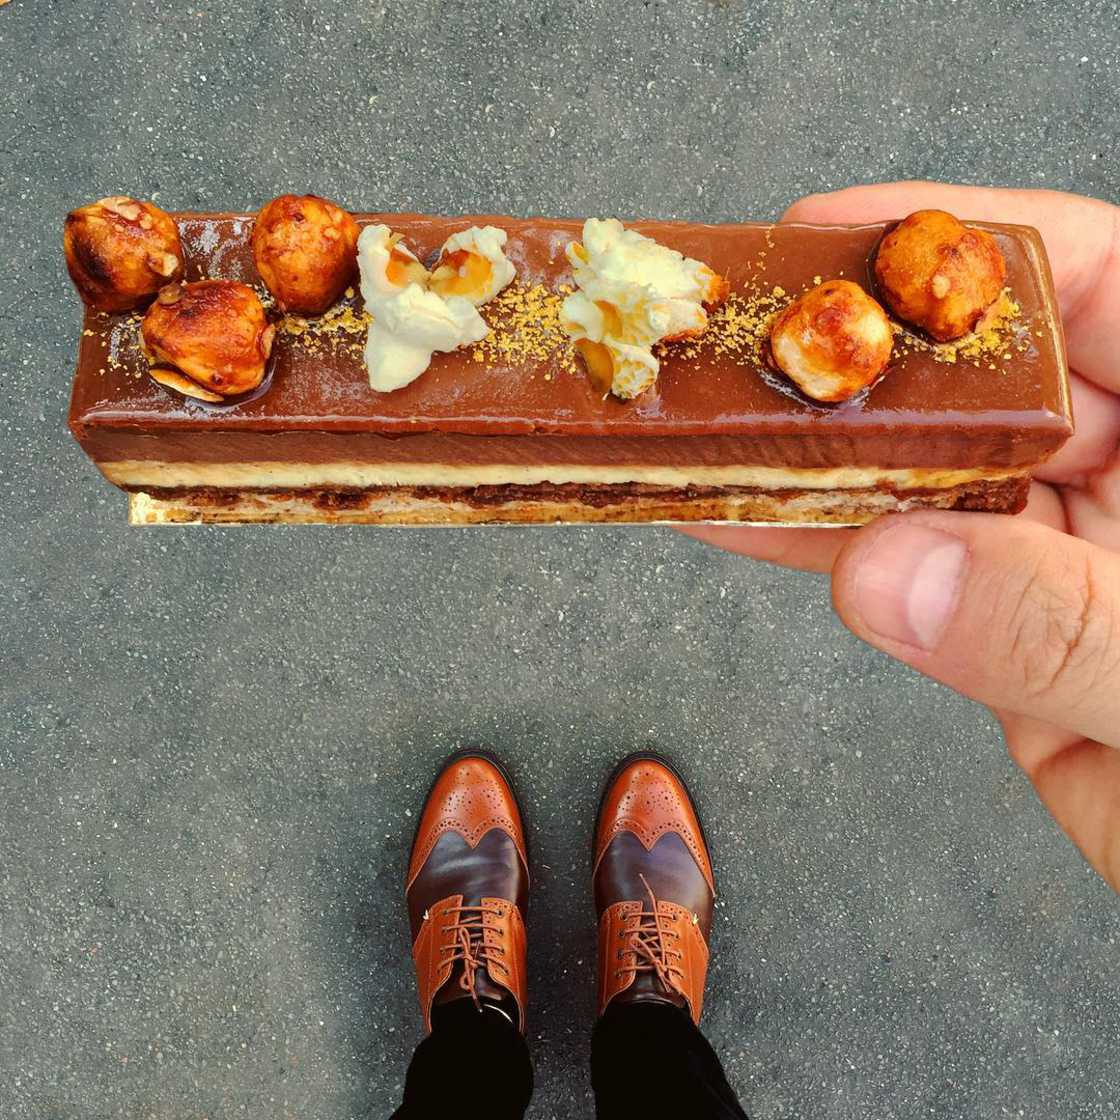 Desserted in Paris - Documenting the finest pastries from Paris